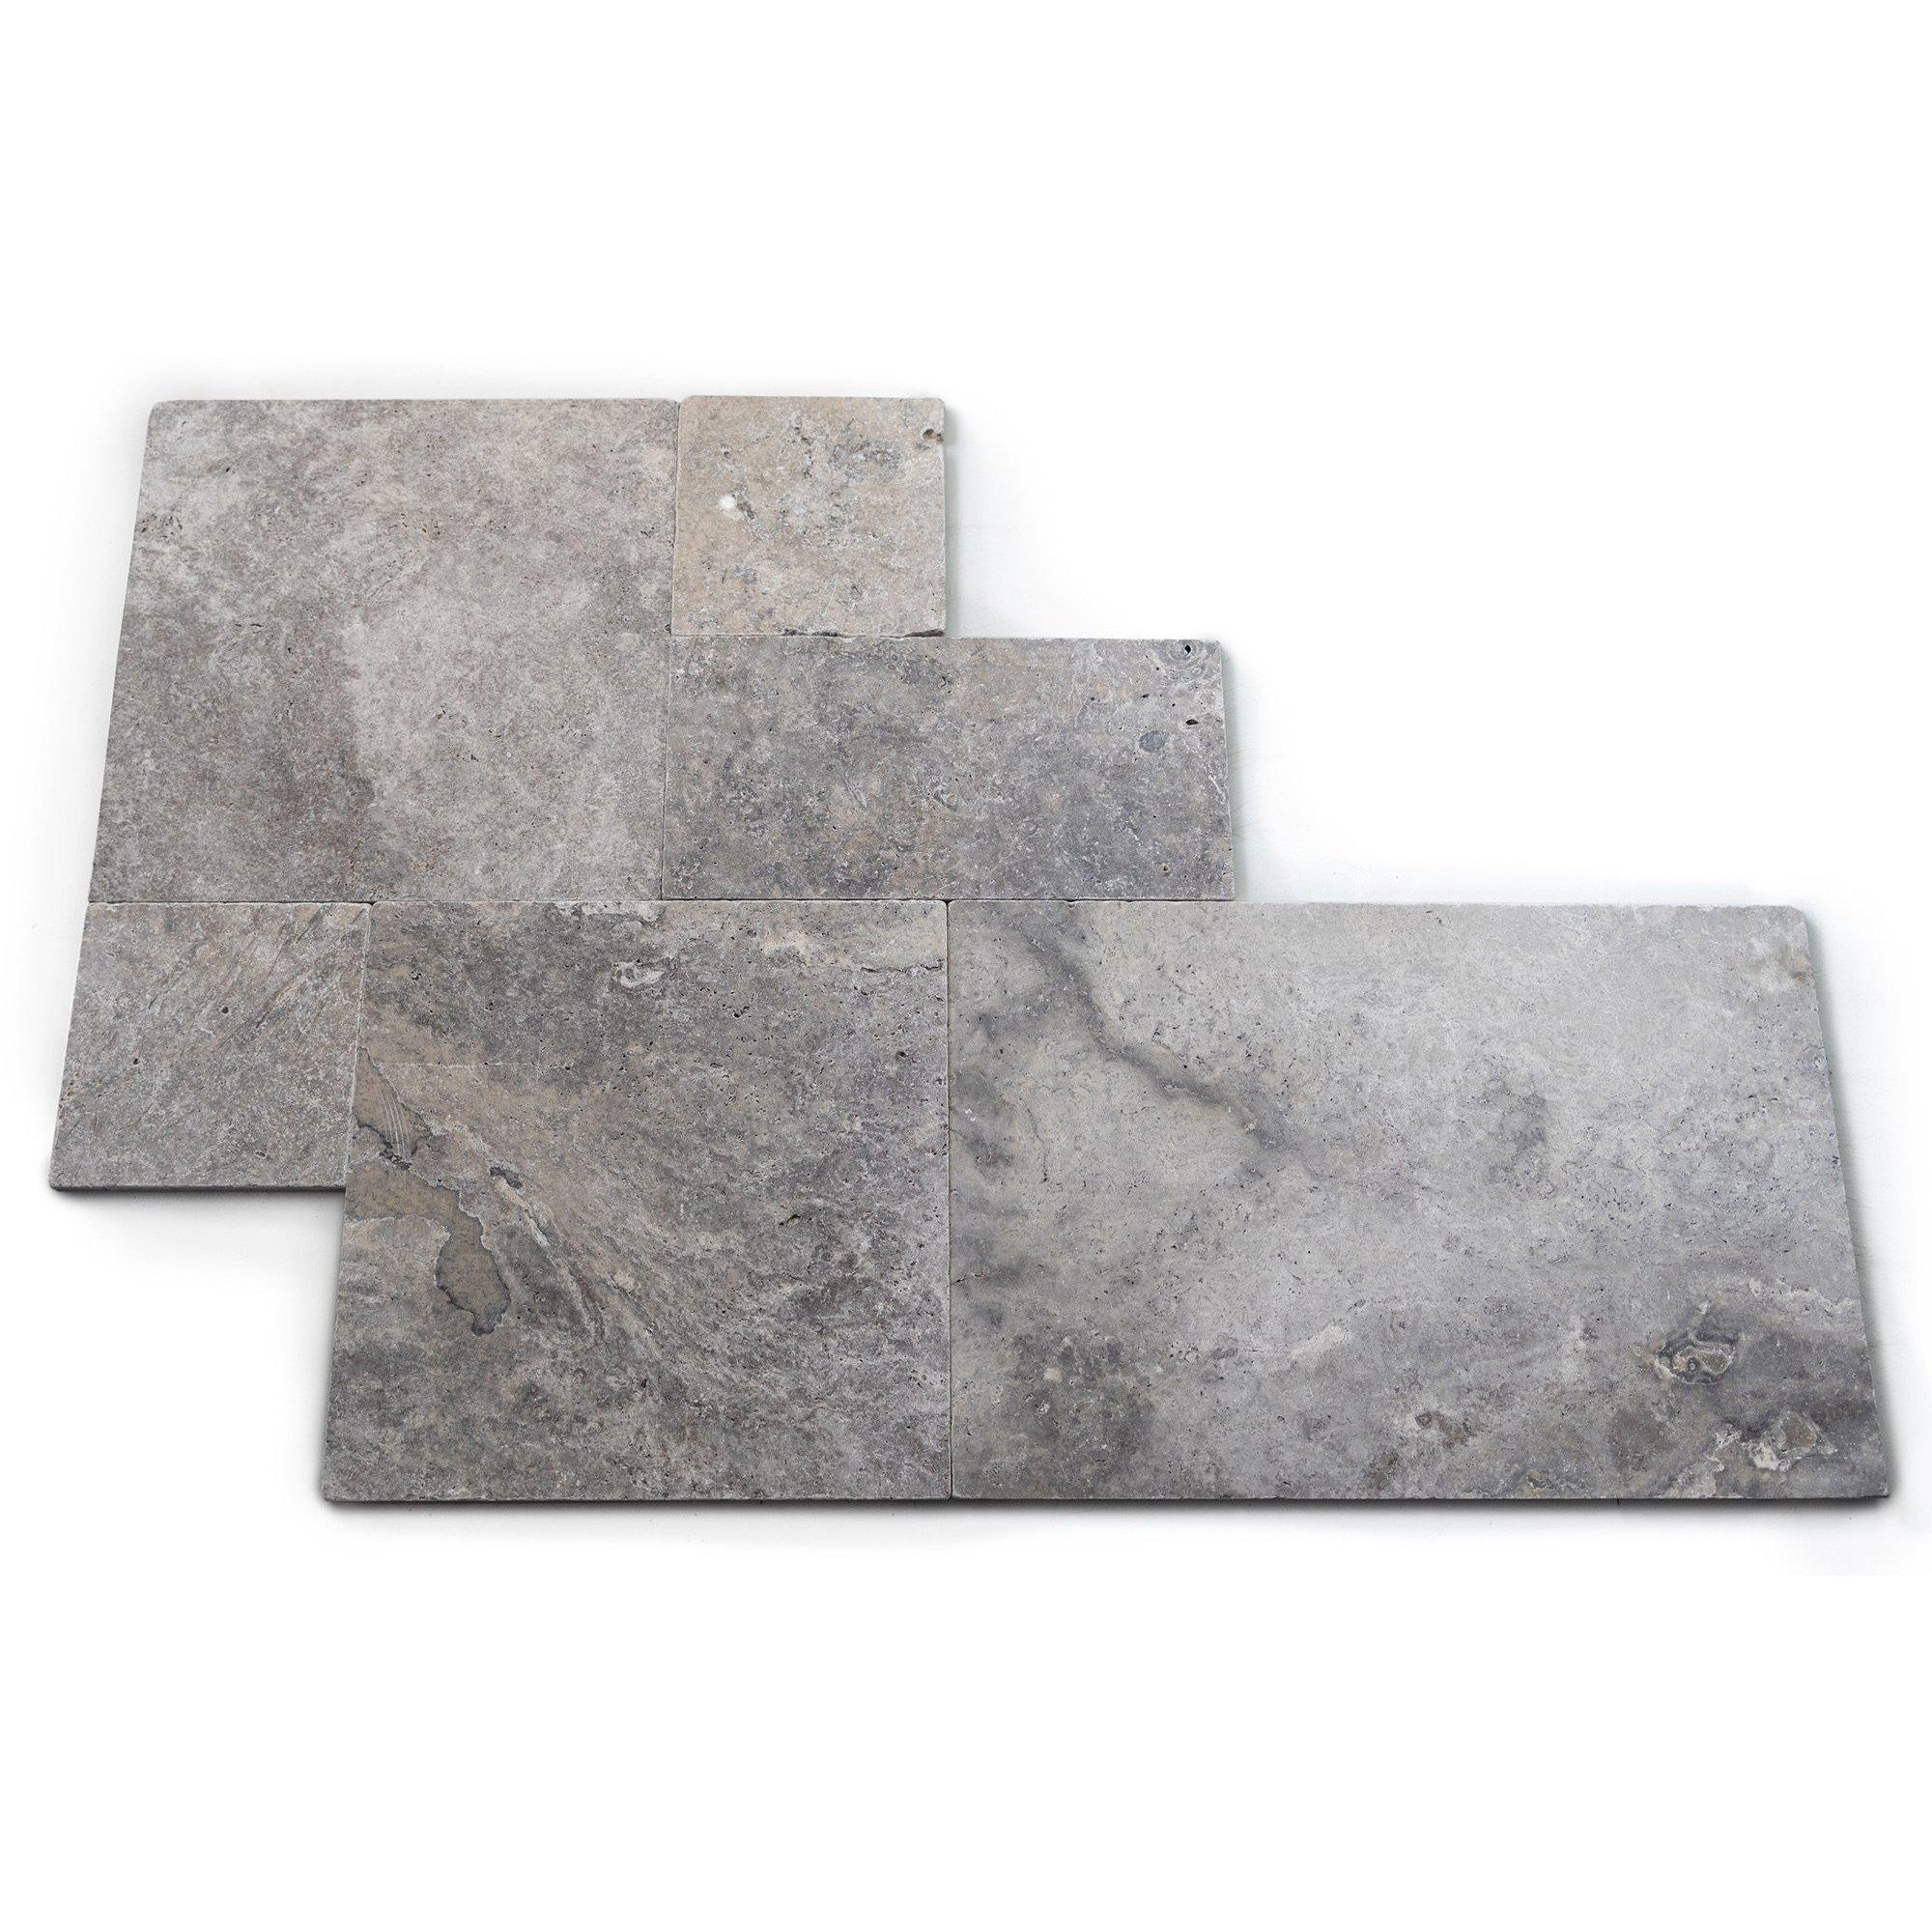 Premium Silver Tumbled French Set Travertine Tile